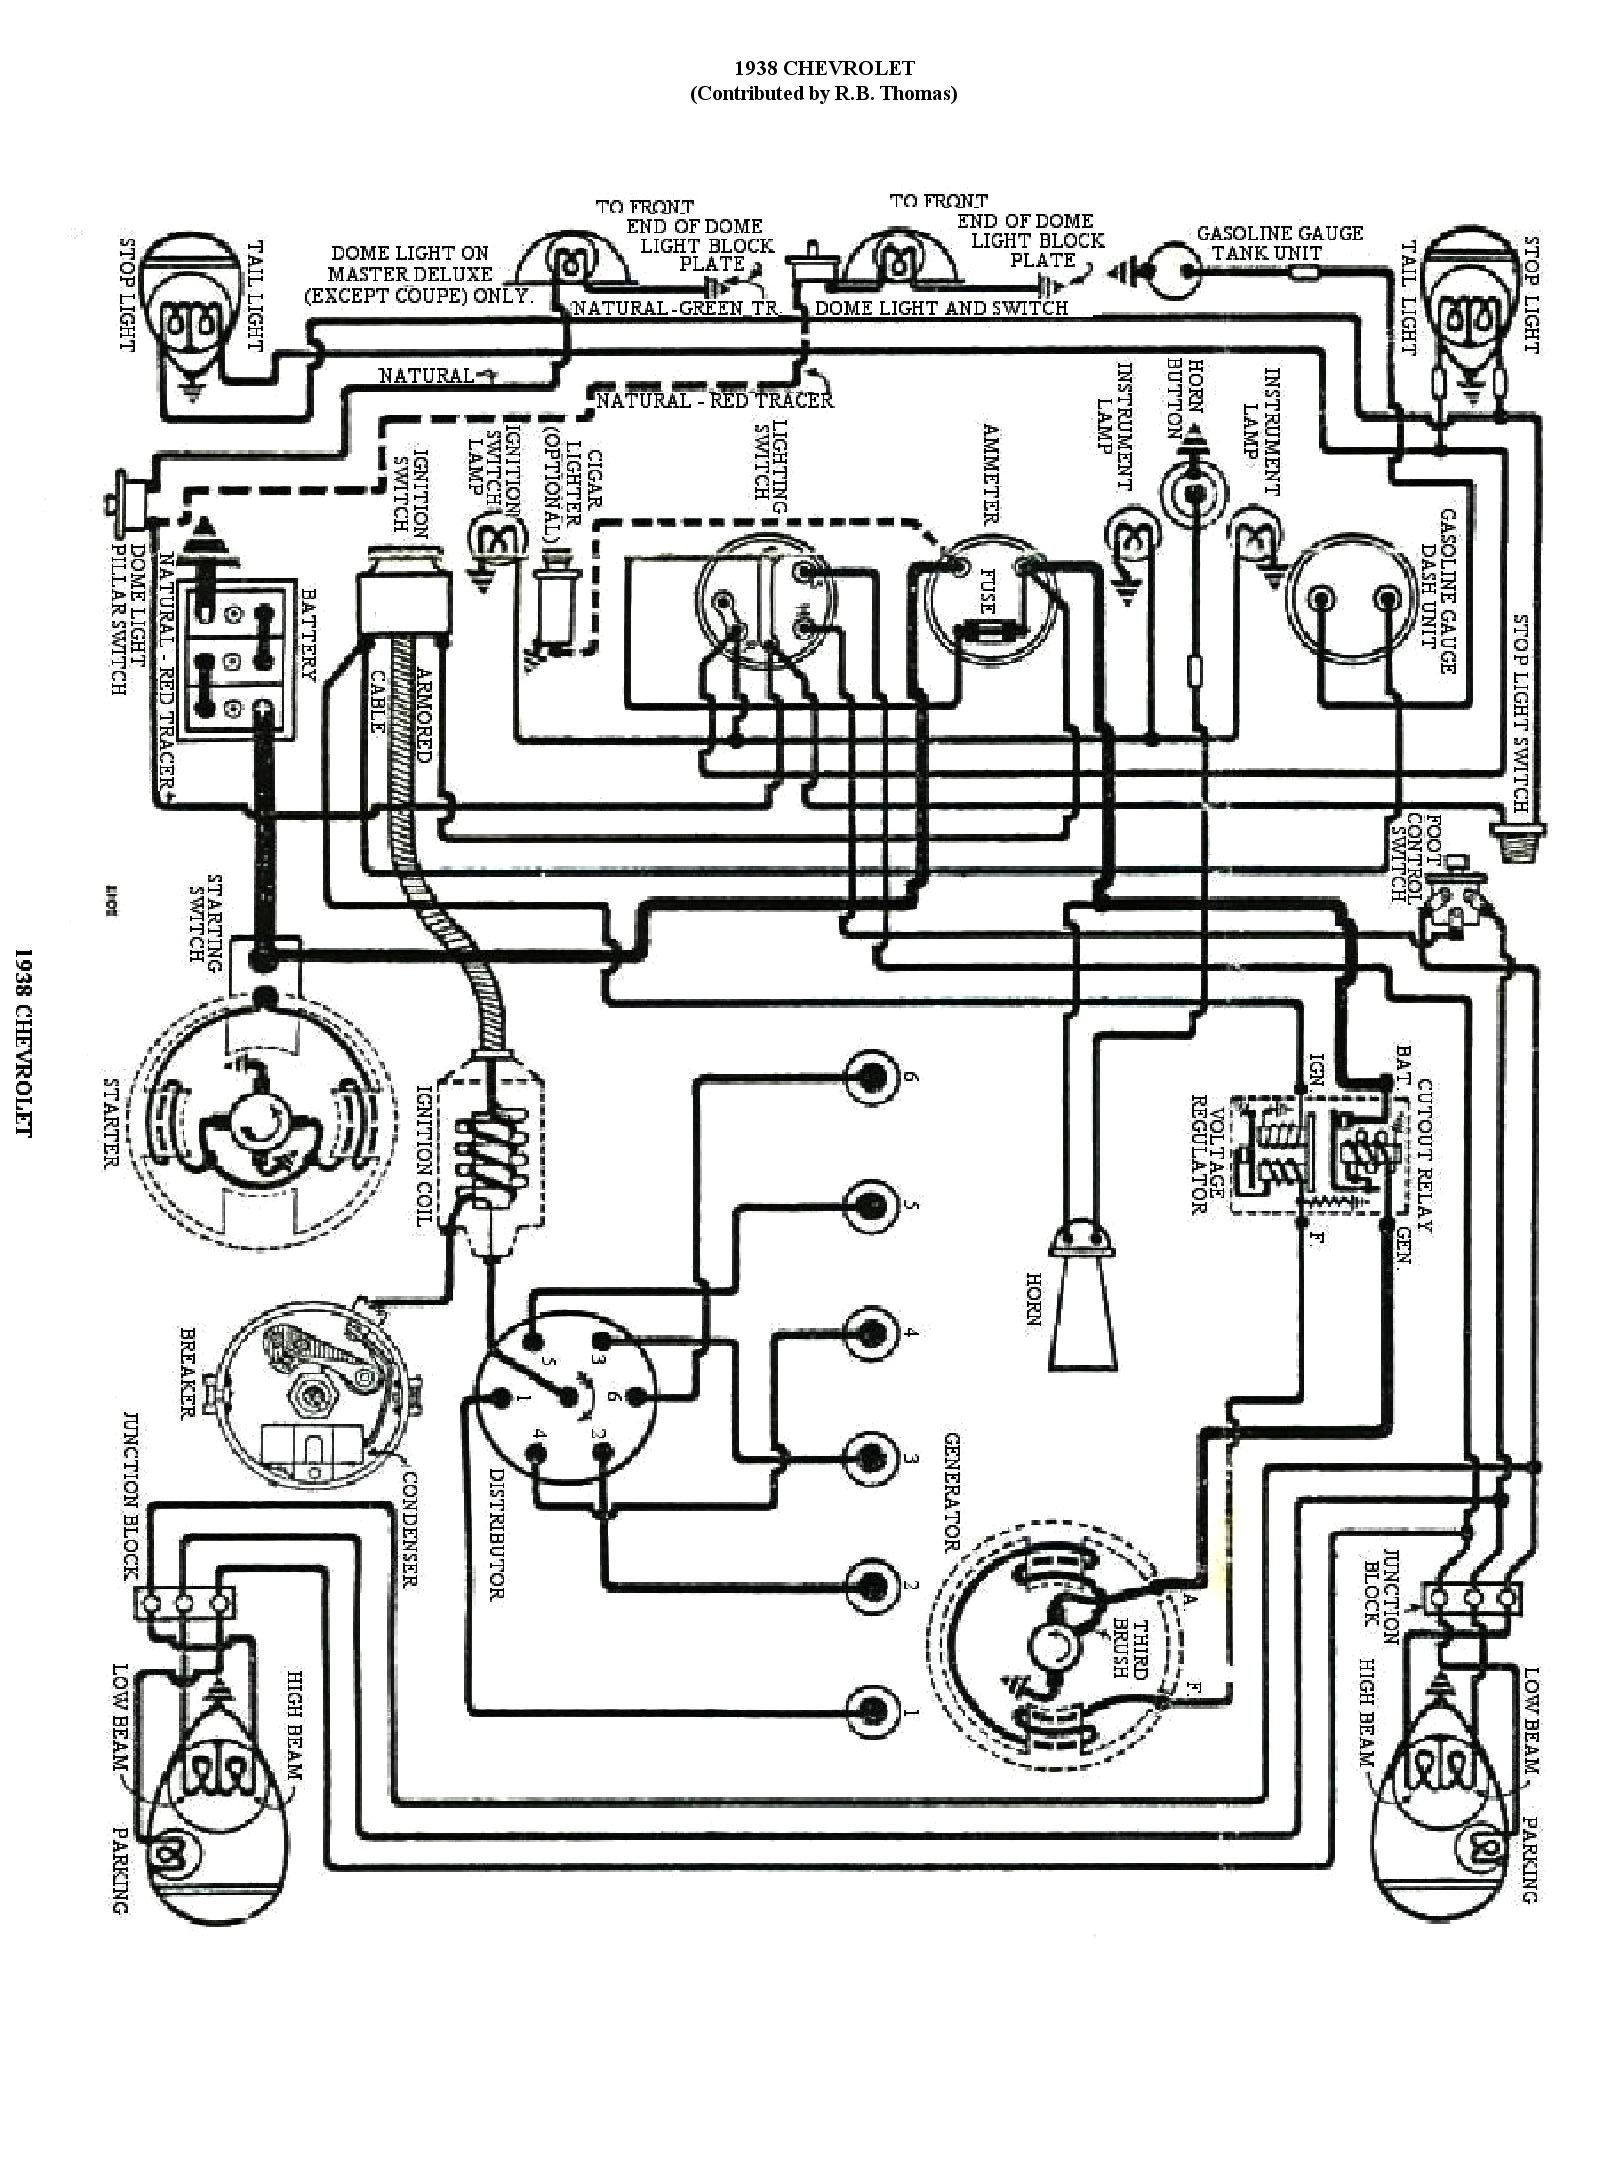 chevy wiring diagrams 1974 Chevy Suburban 1938 wiring